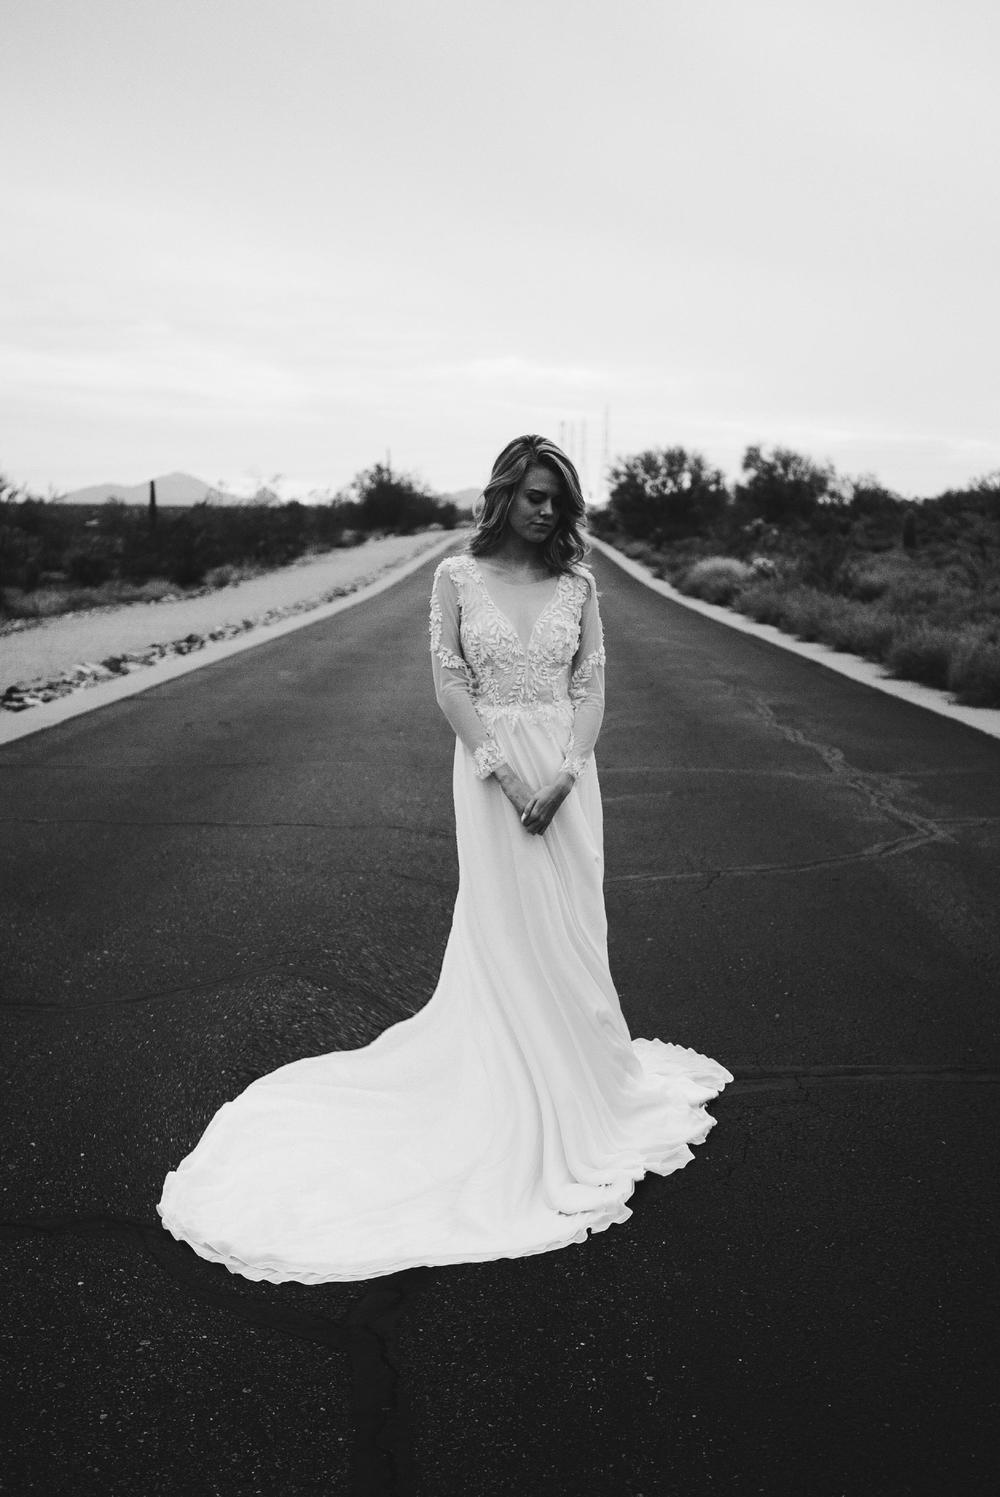 Willow Bridal gown by Tanya Anic  Photography Becca Gulick